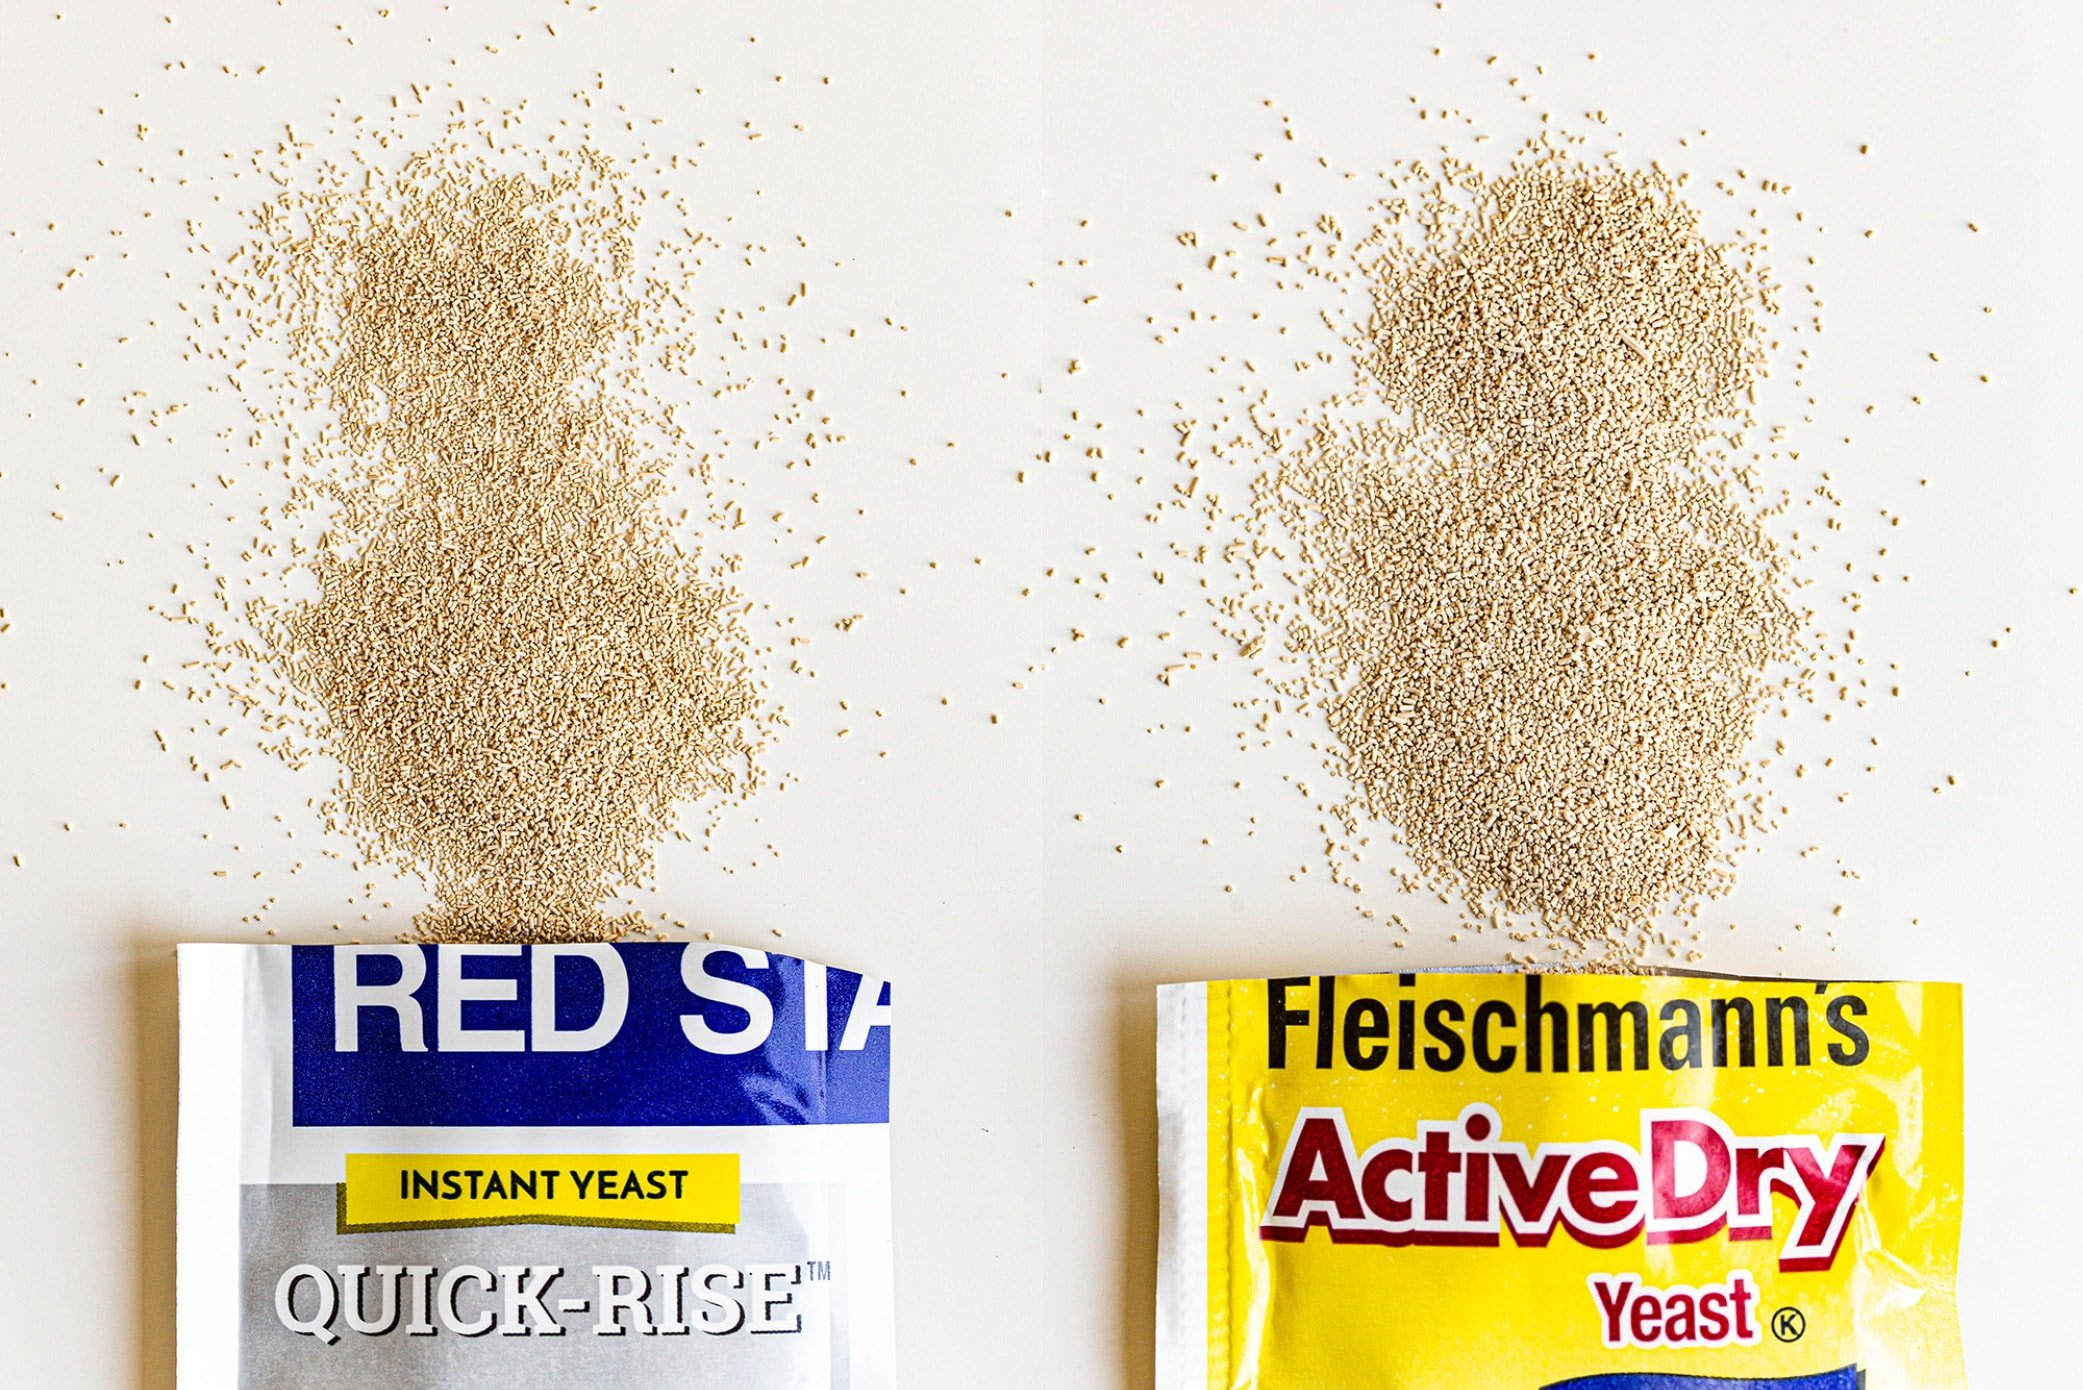 two packets of instant yeast on the left and active dry yeast on the right